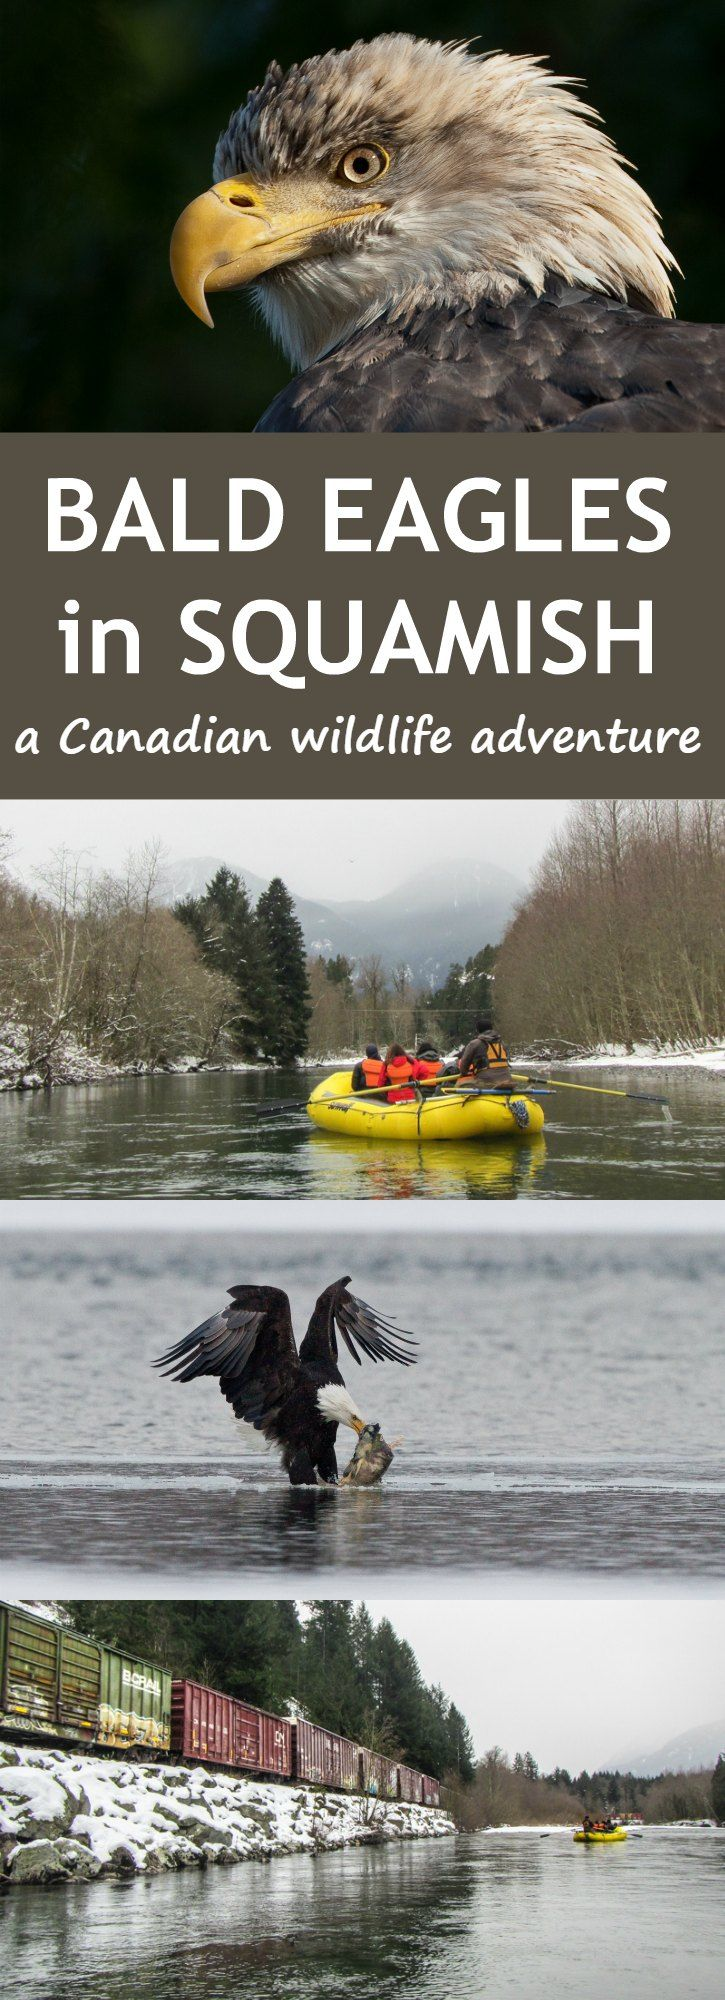 Experiencing a bald eagle float tour in beautiful Squamish, British Columbia Canada at Sunwolf in the small town of Brackendale